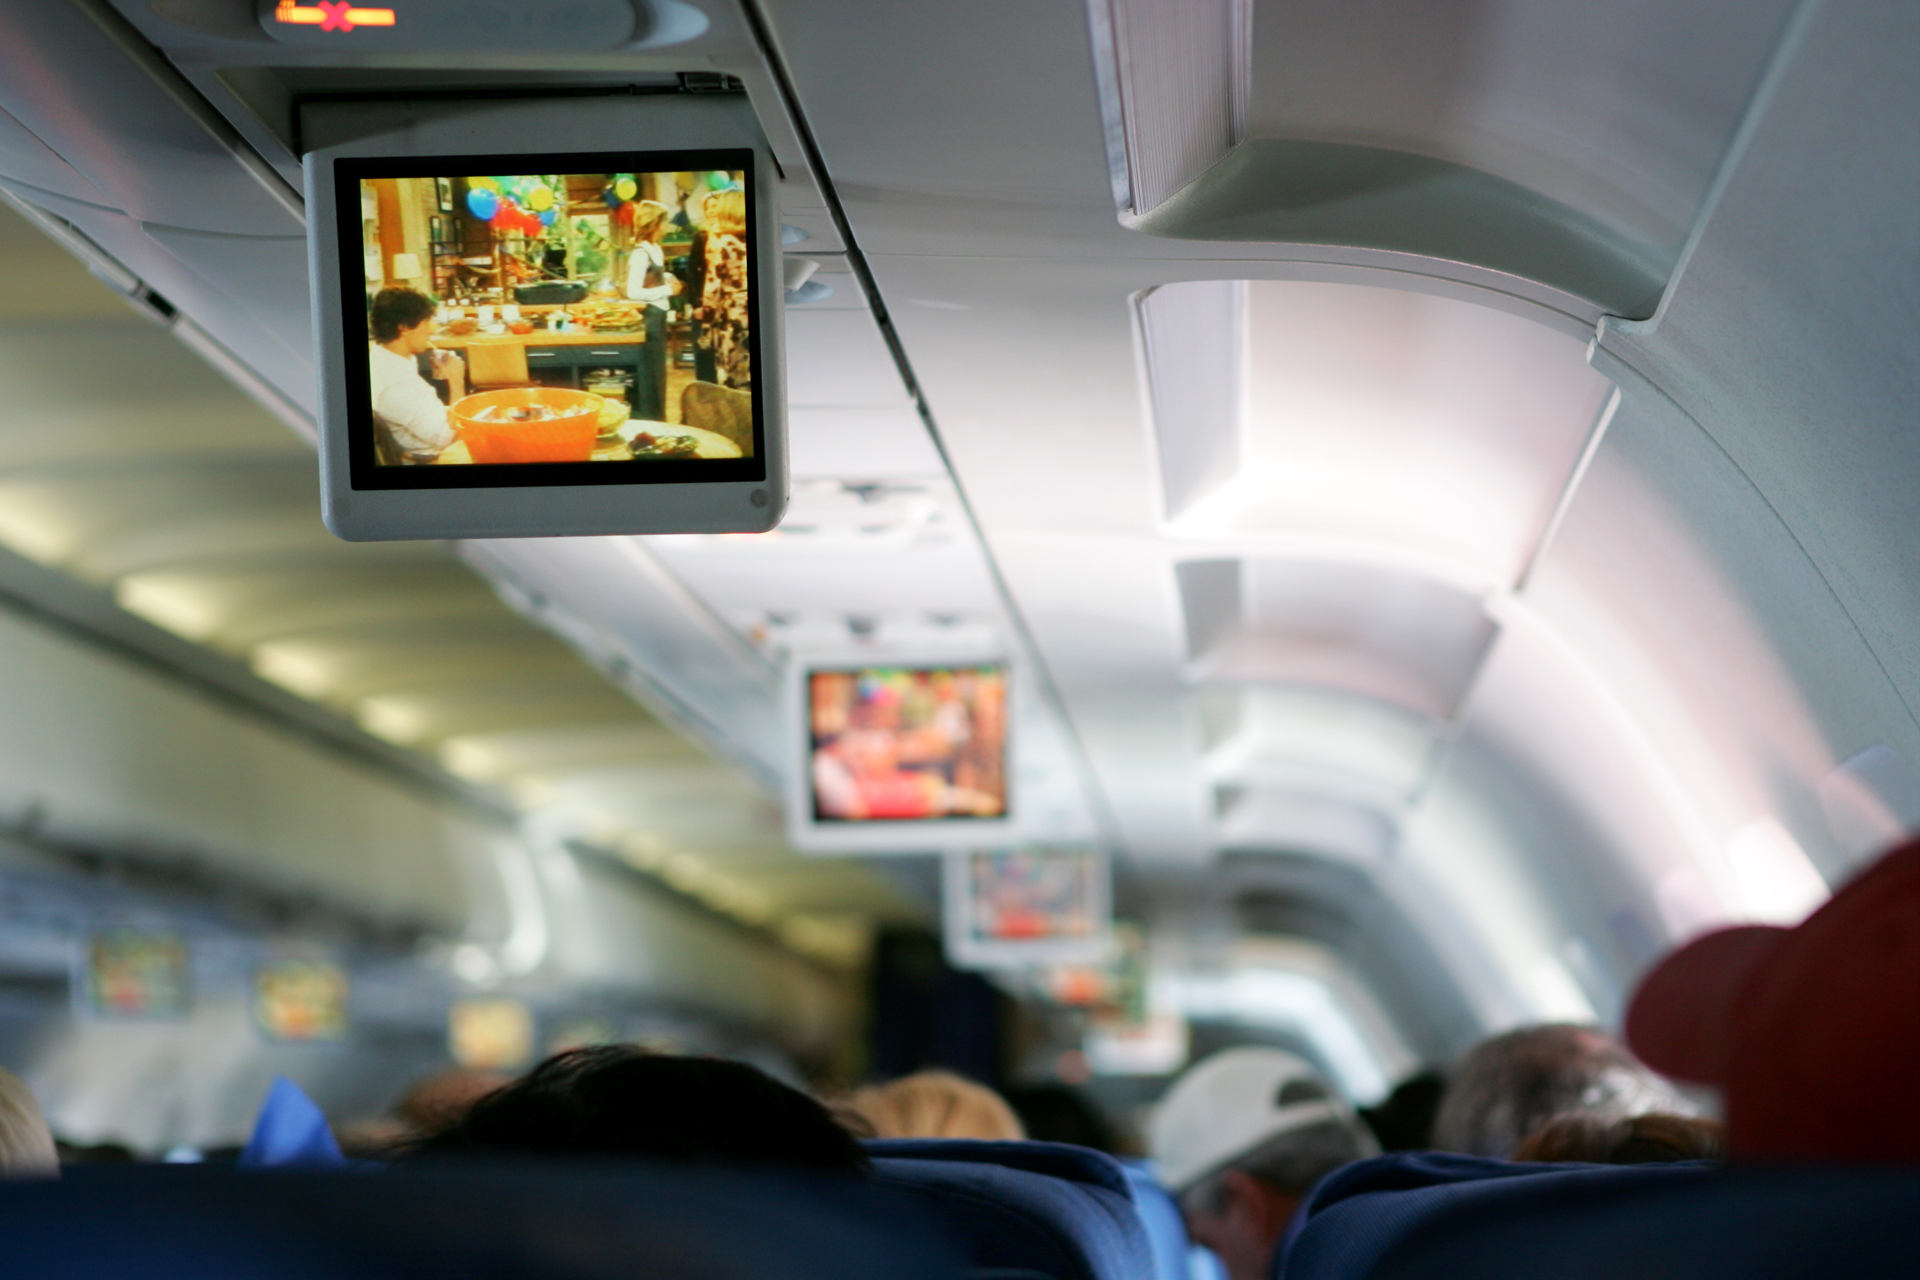 Inflight entertainment service provider